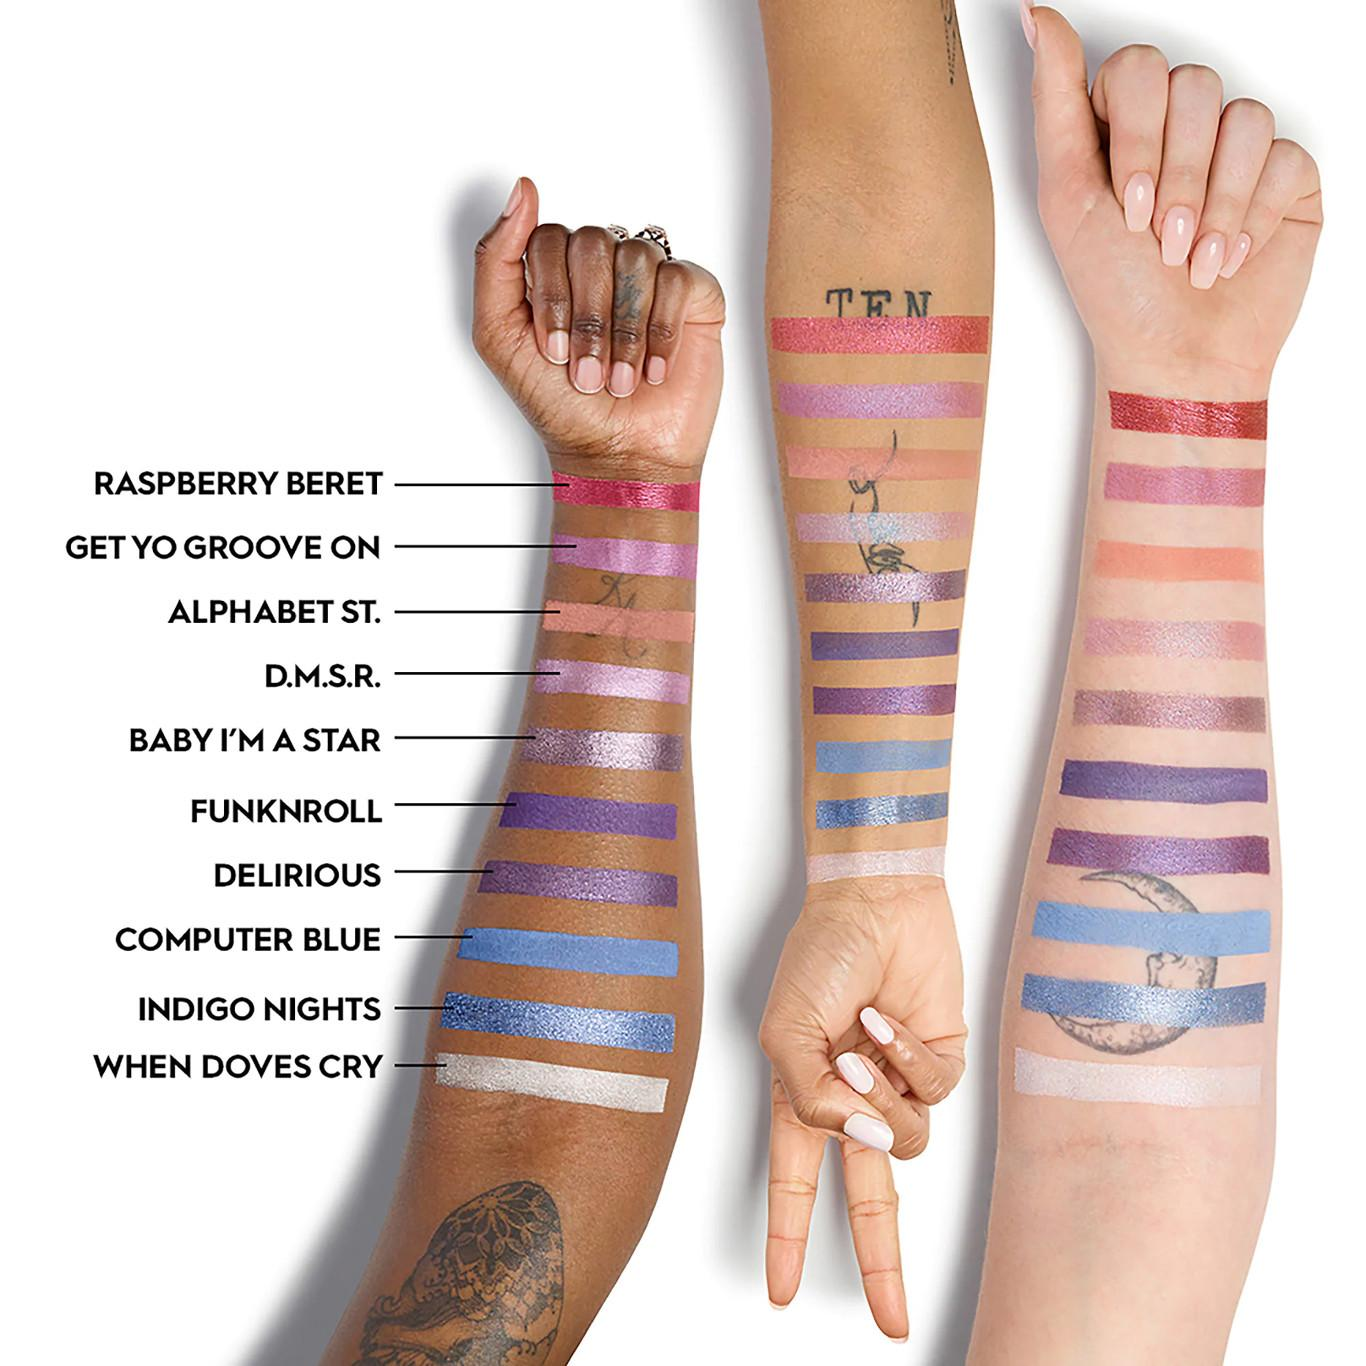 Urban Decay Prince Collection Prince Let'S Go Crazy Eyeshadow Palette Arm Swatches